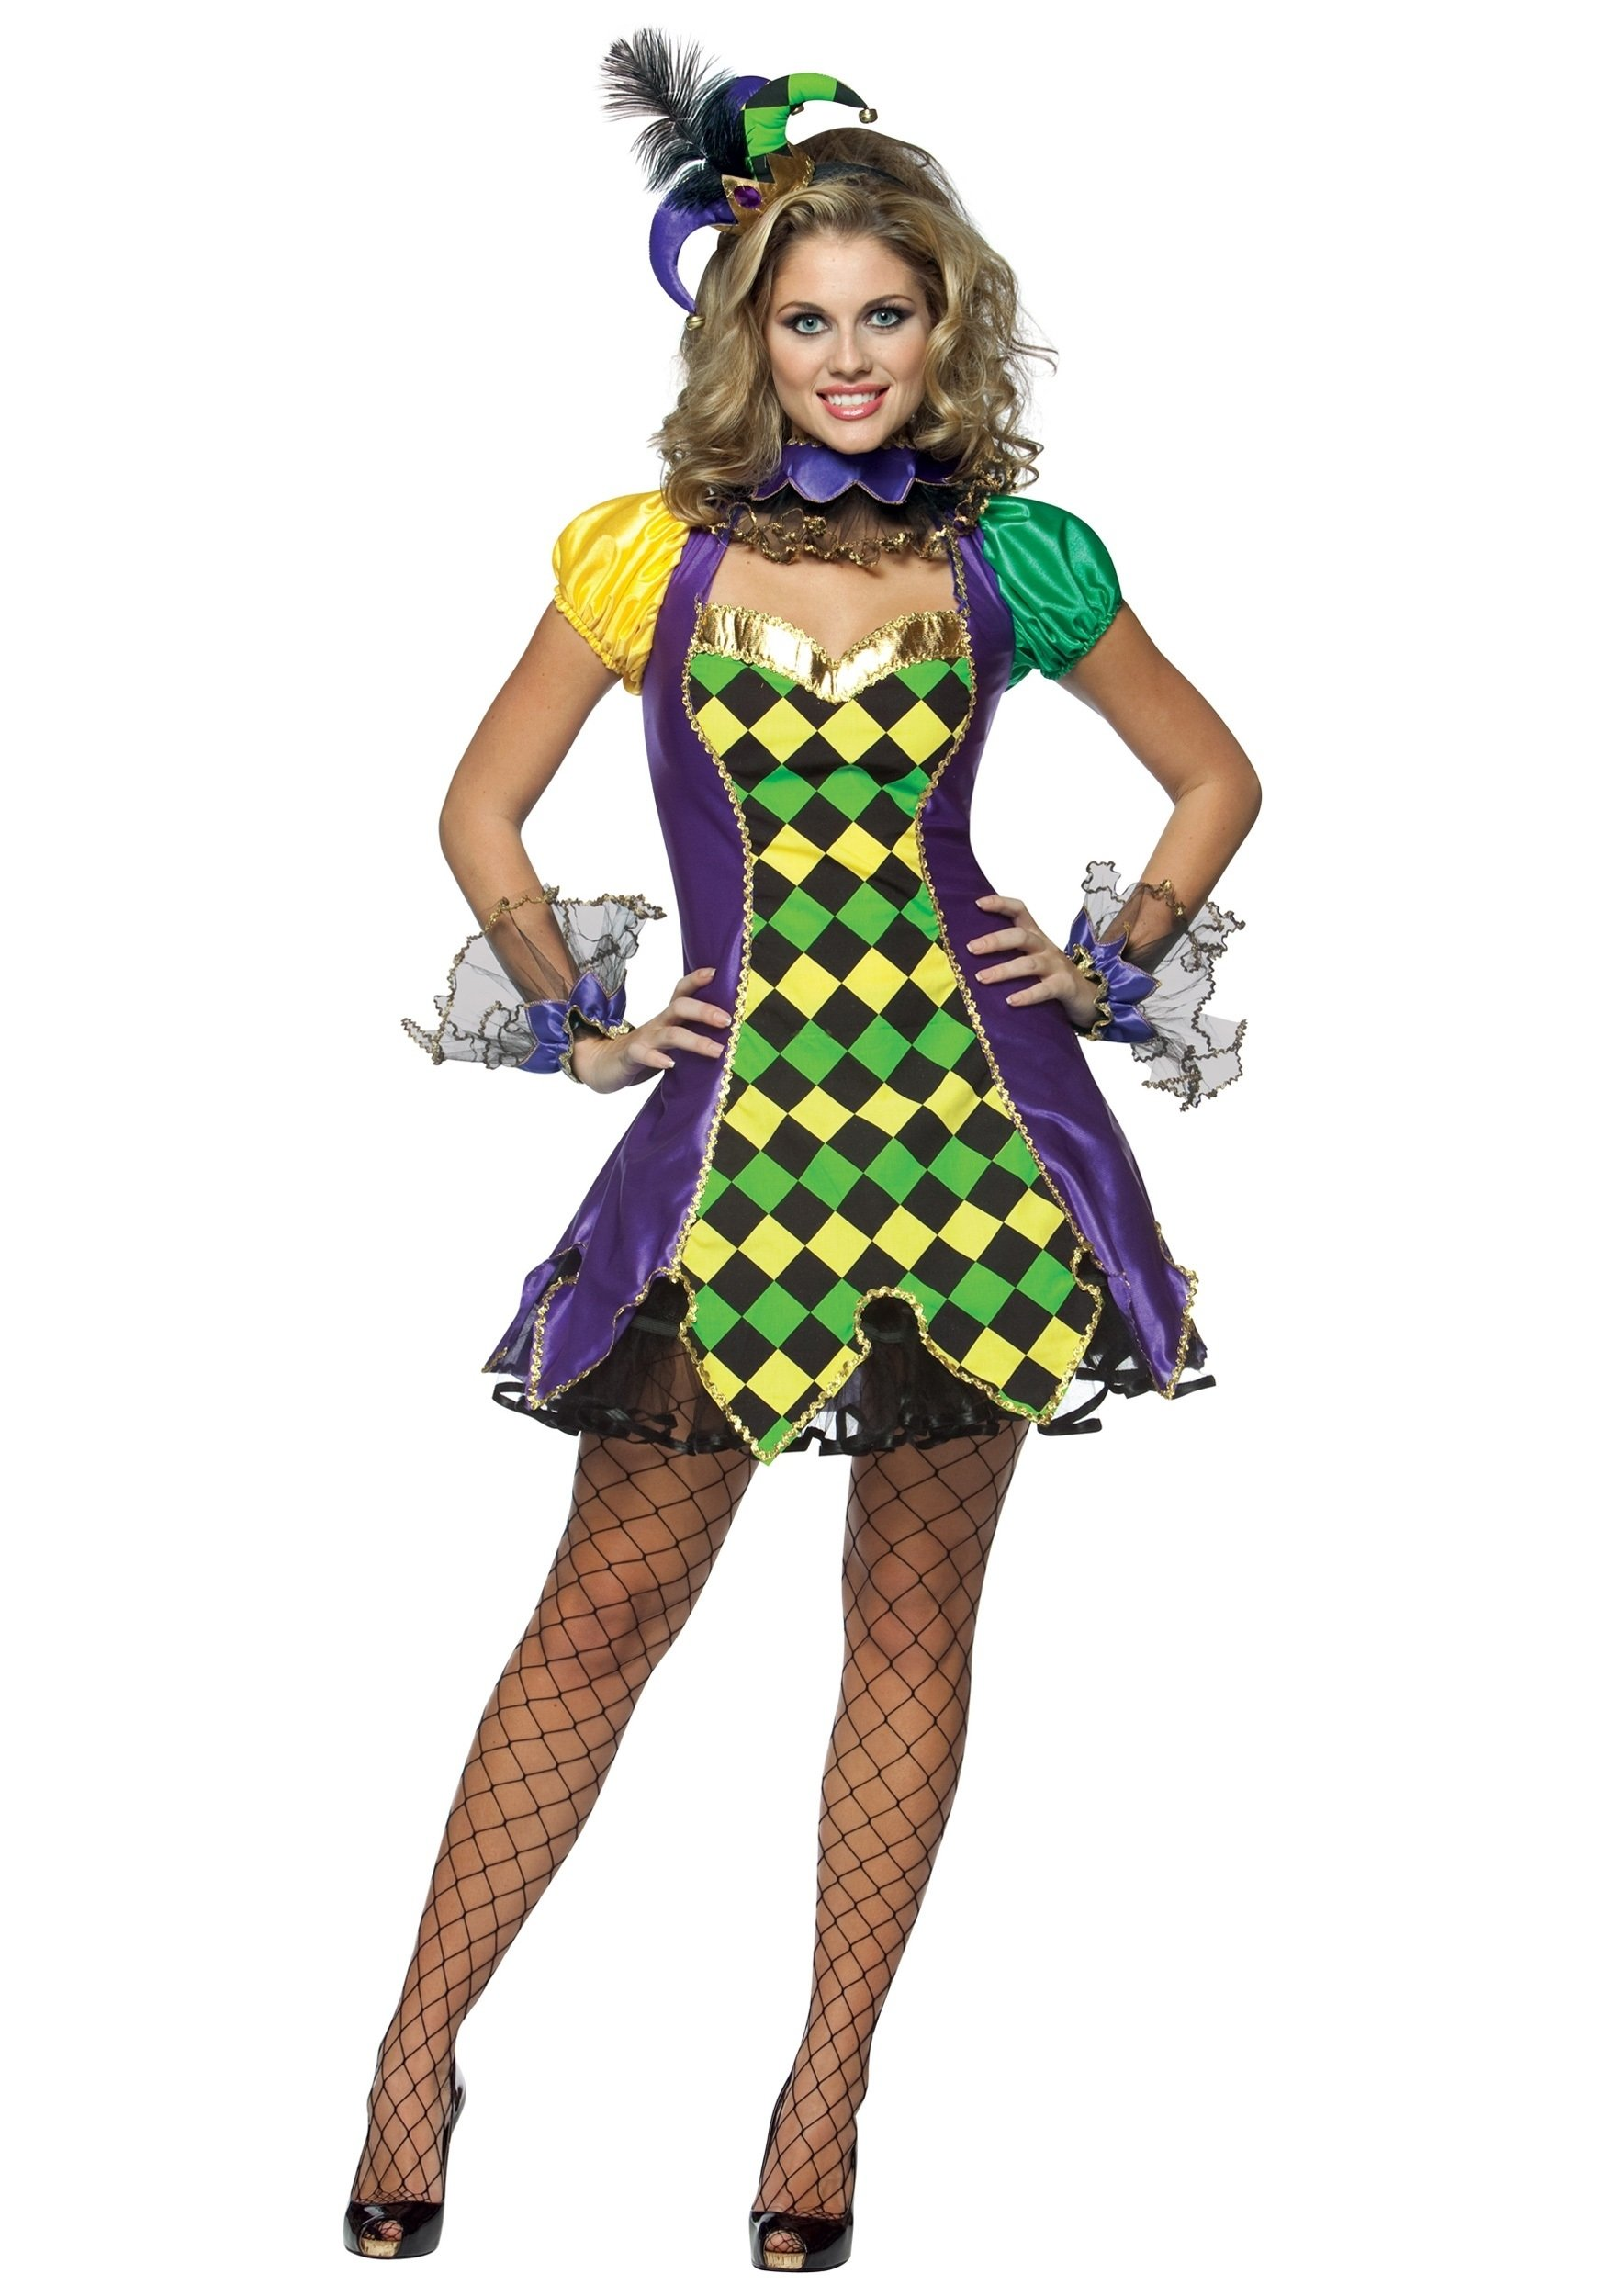 10 Great Mardi Gras Party Outfit Ideas sexy mardi gras jester costume 2020